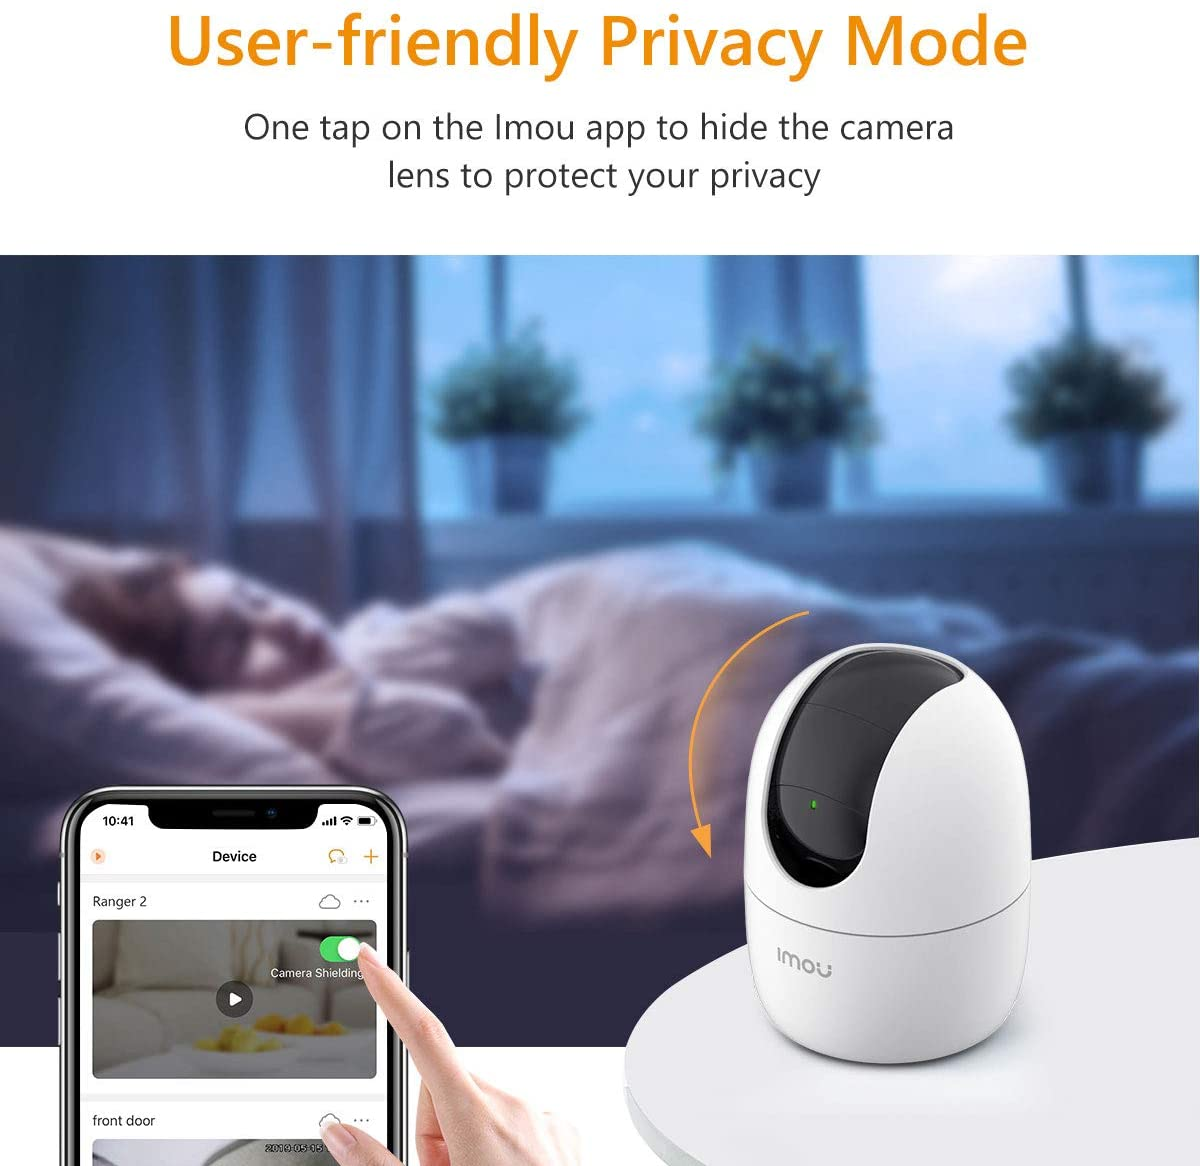 Imou Ranger 2 Indoor Wi-Fi Security Camera, 1080P Pan/Tilt Dome Camera, Home Surveillance Camera with Human Detection, Smart Tracking, Privacy Mode, Smart Sound Detection, Two-way Audio and Night Vision